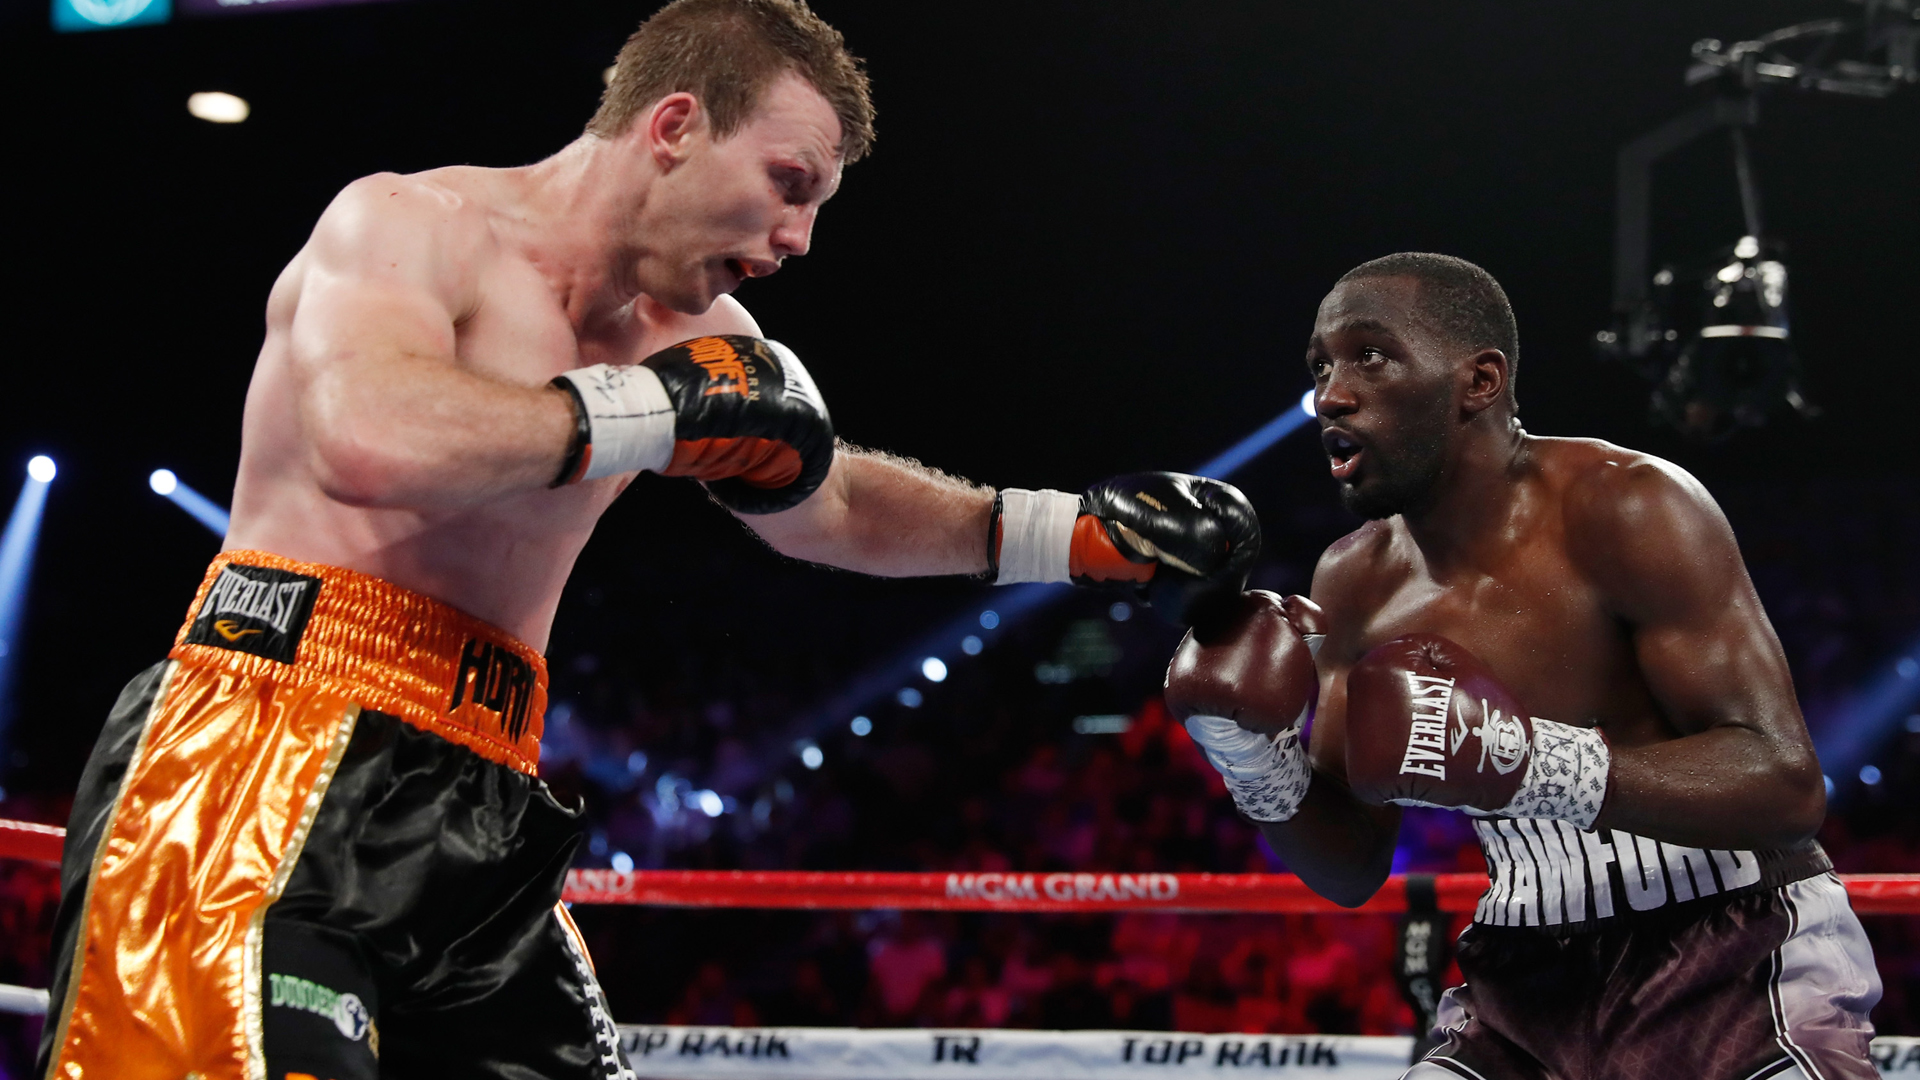 Horn defends title against Crawford